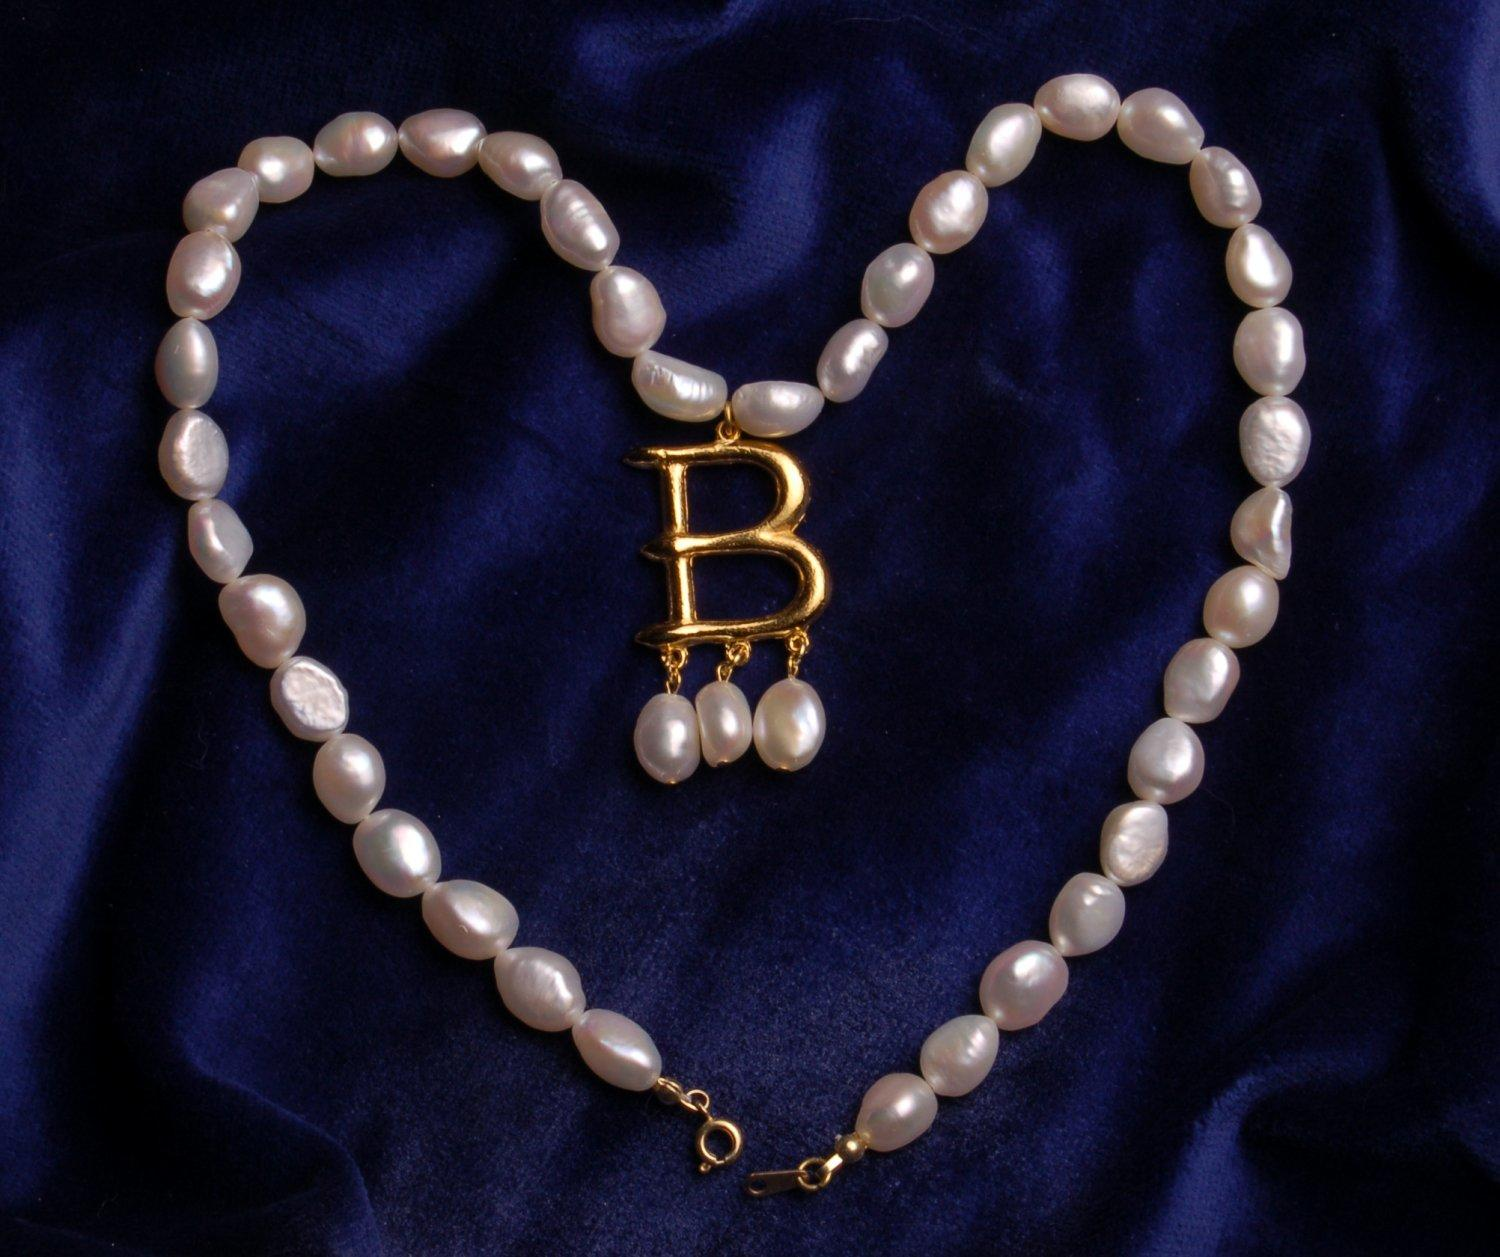 Boleyn B Necklace